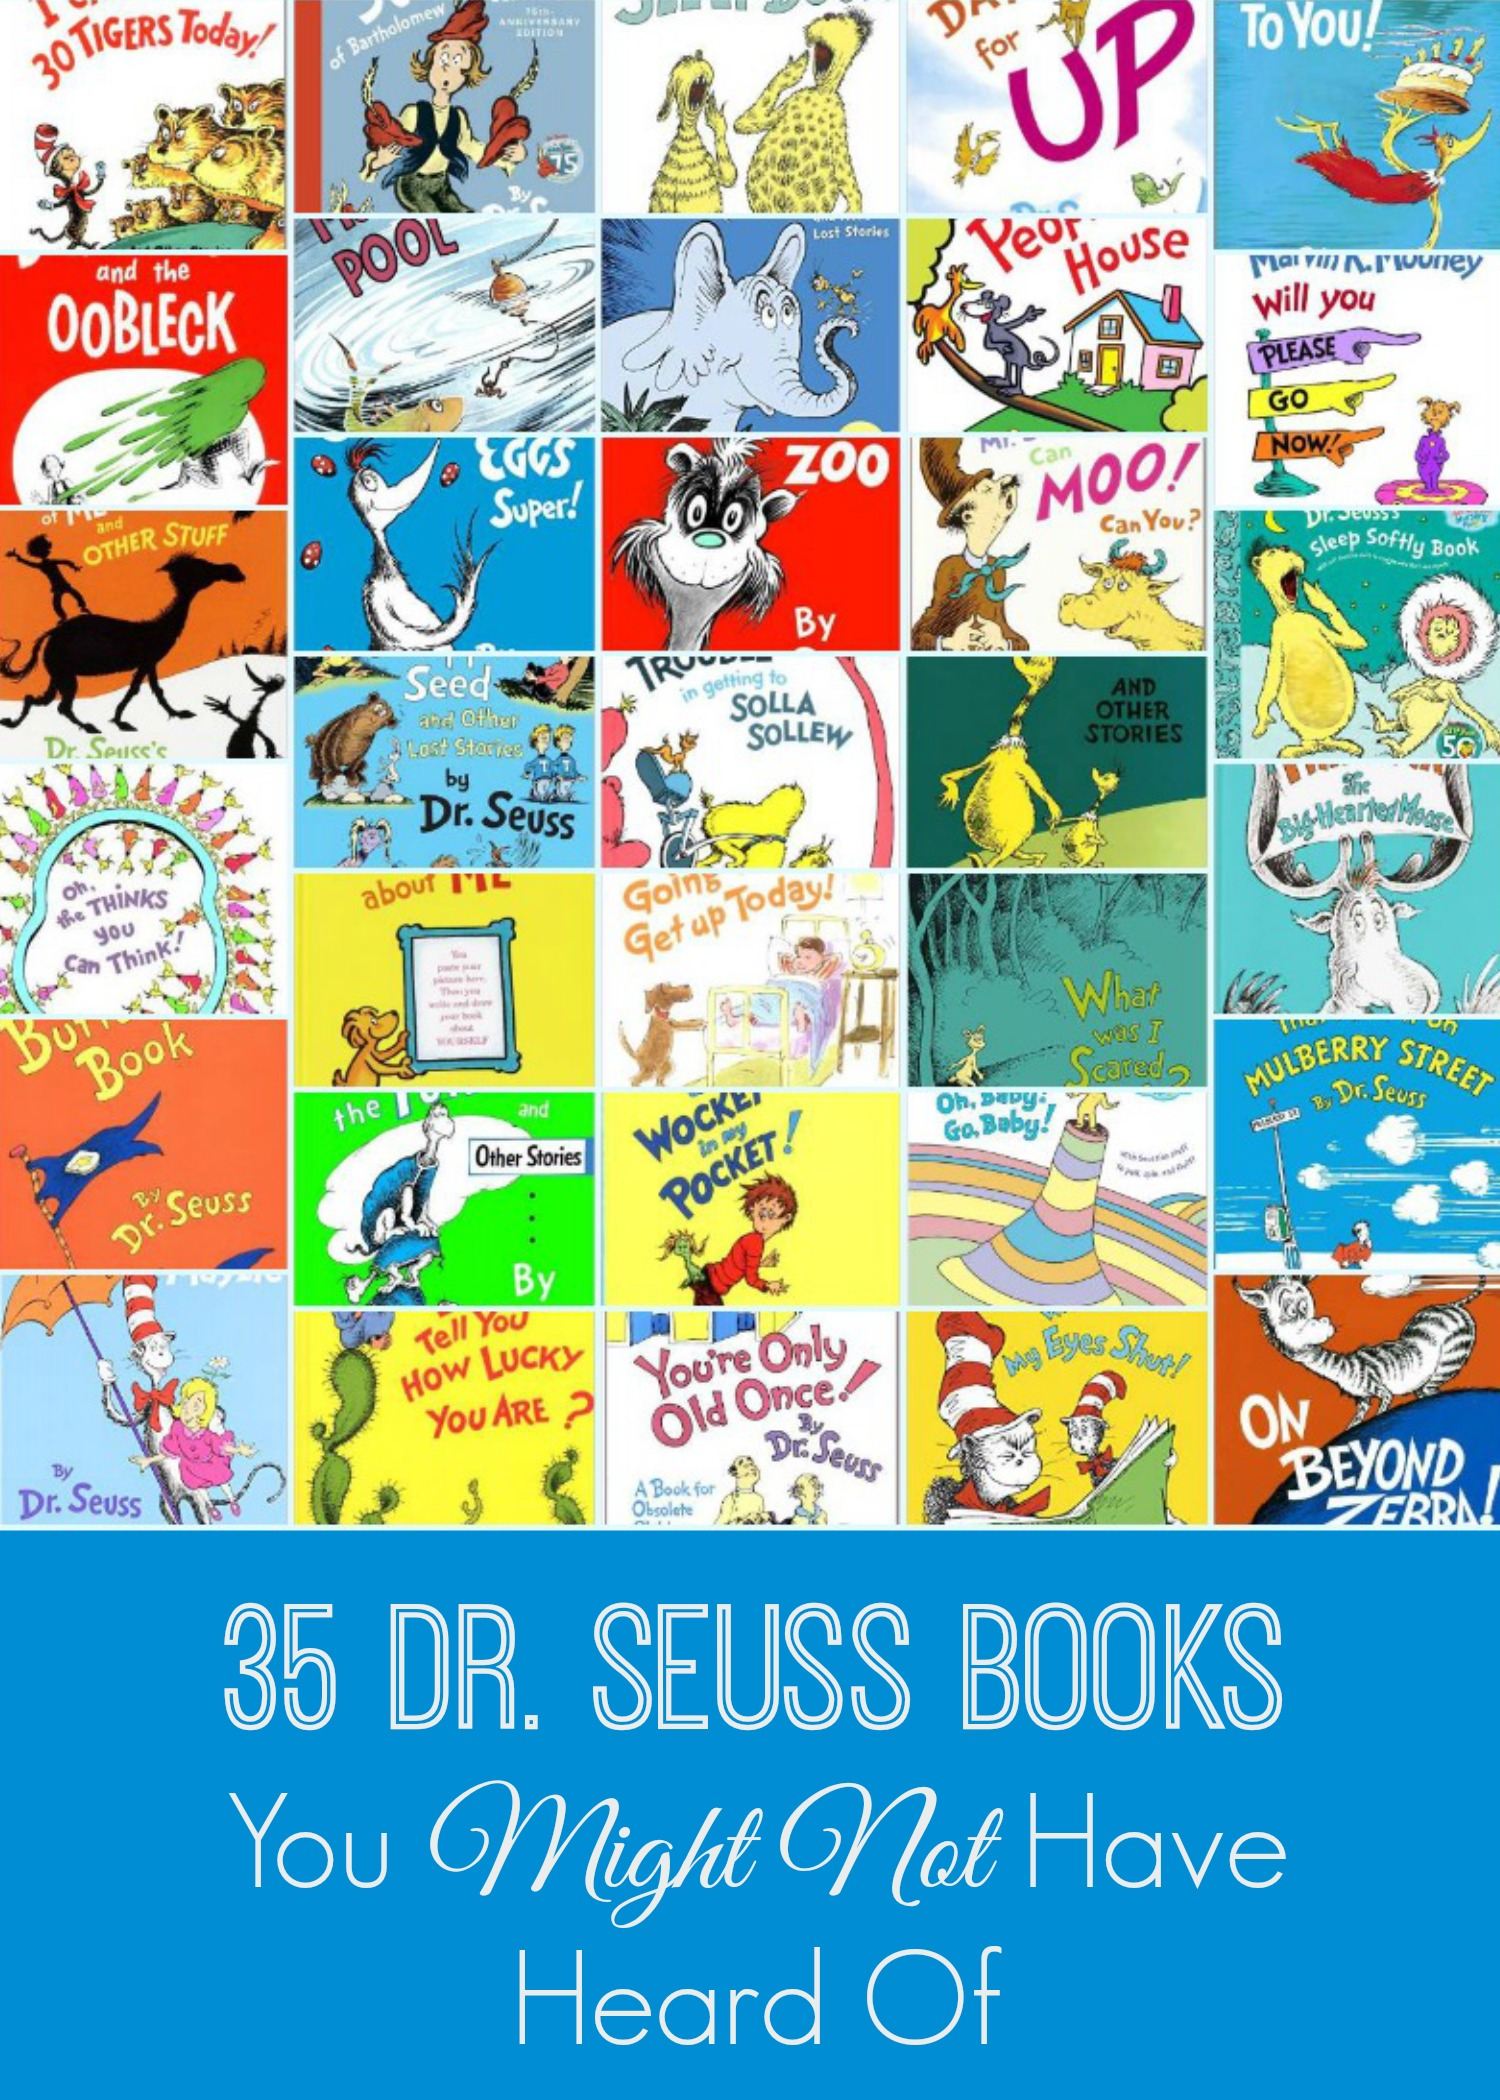 ... Photos - Dr Seuss Books With Poems For Children The Cat In The Hat The